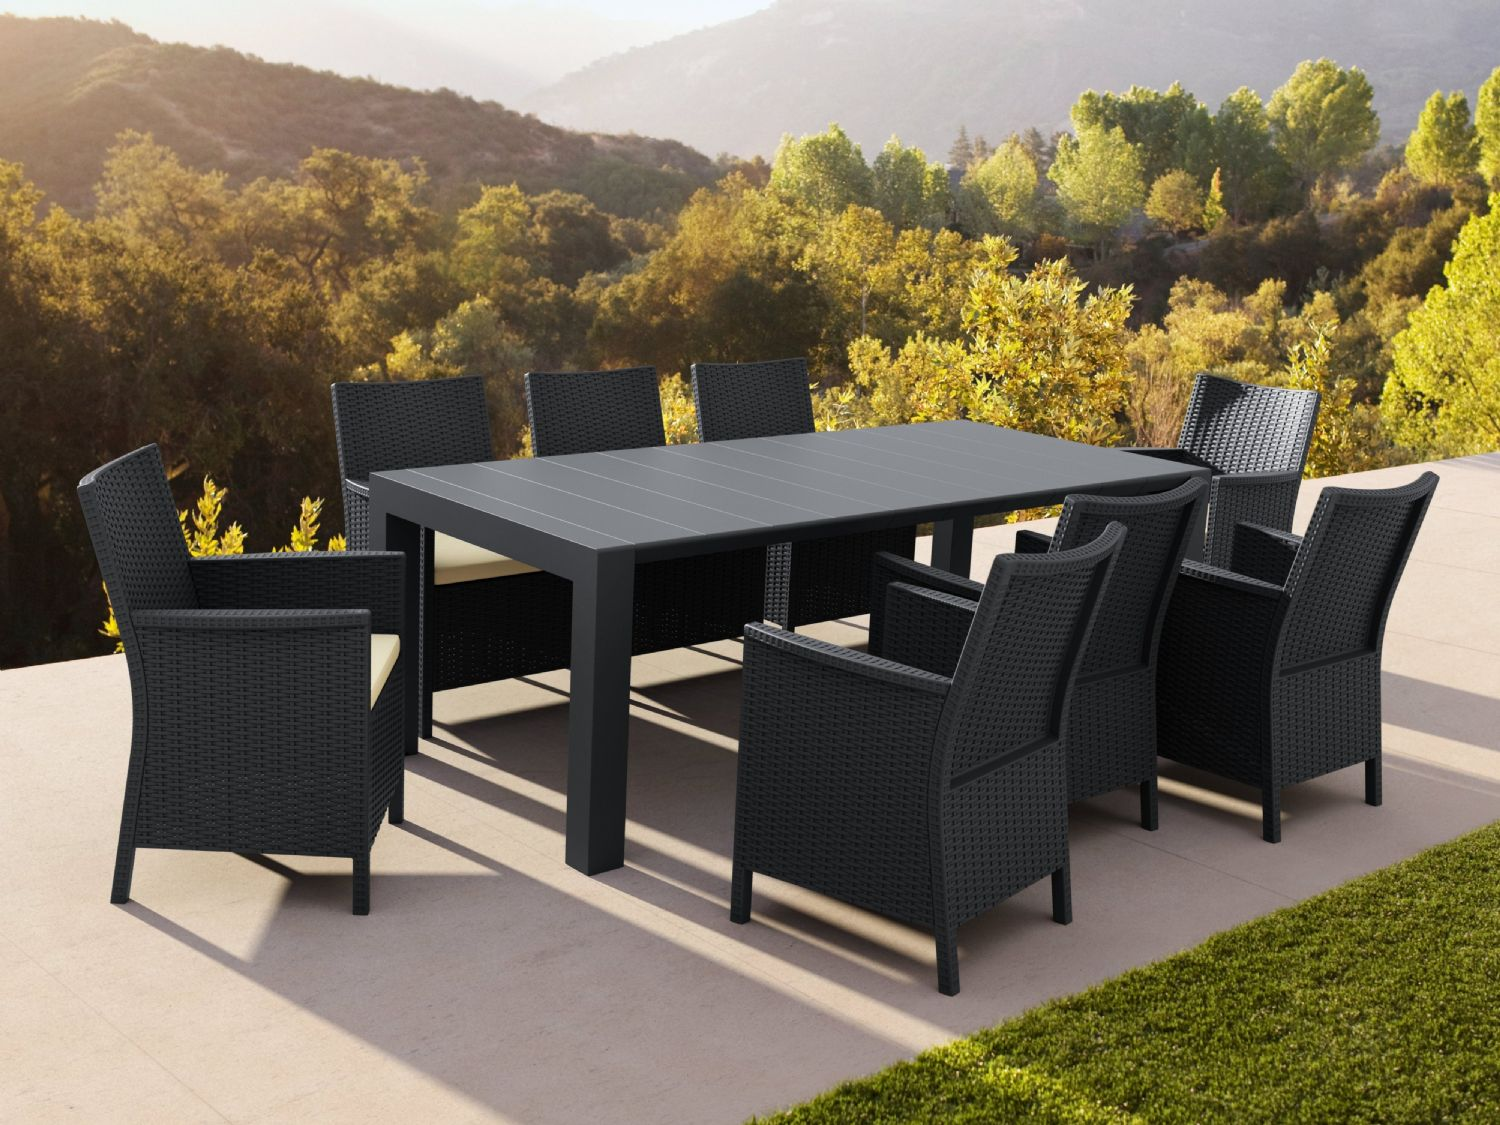 California Extendable Dining Set 9 Piece Brown ISP8066S-BR - 2